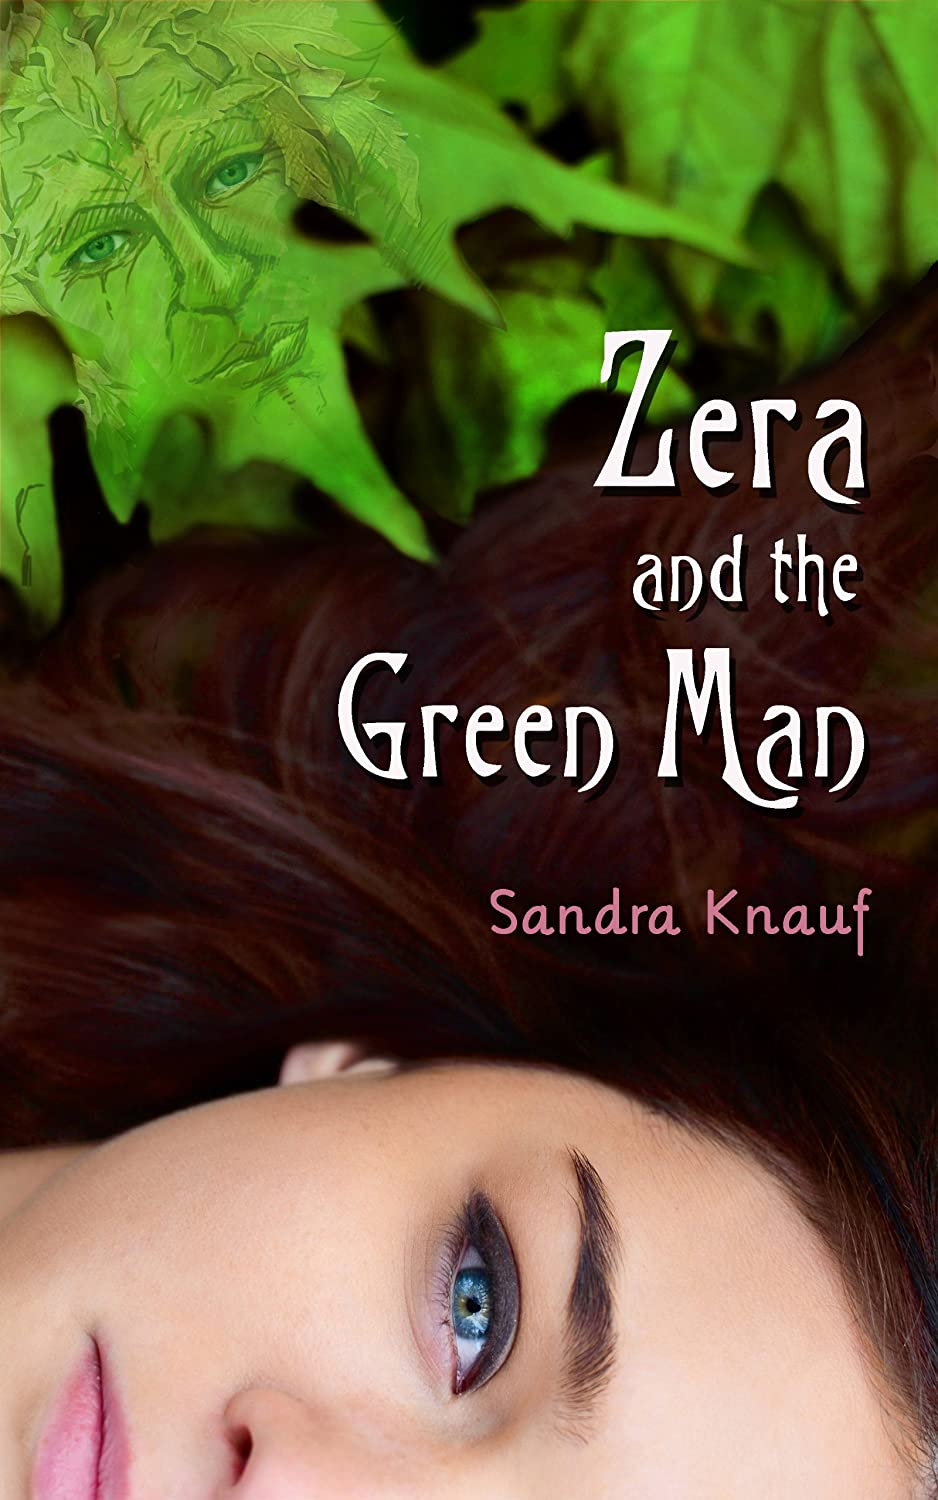 Zera-for-Amazon-Kindle